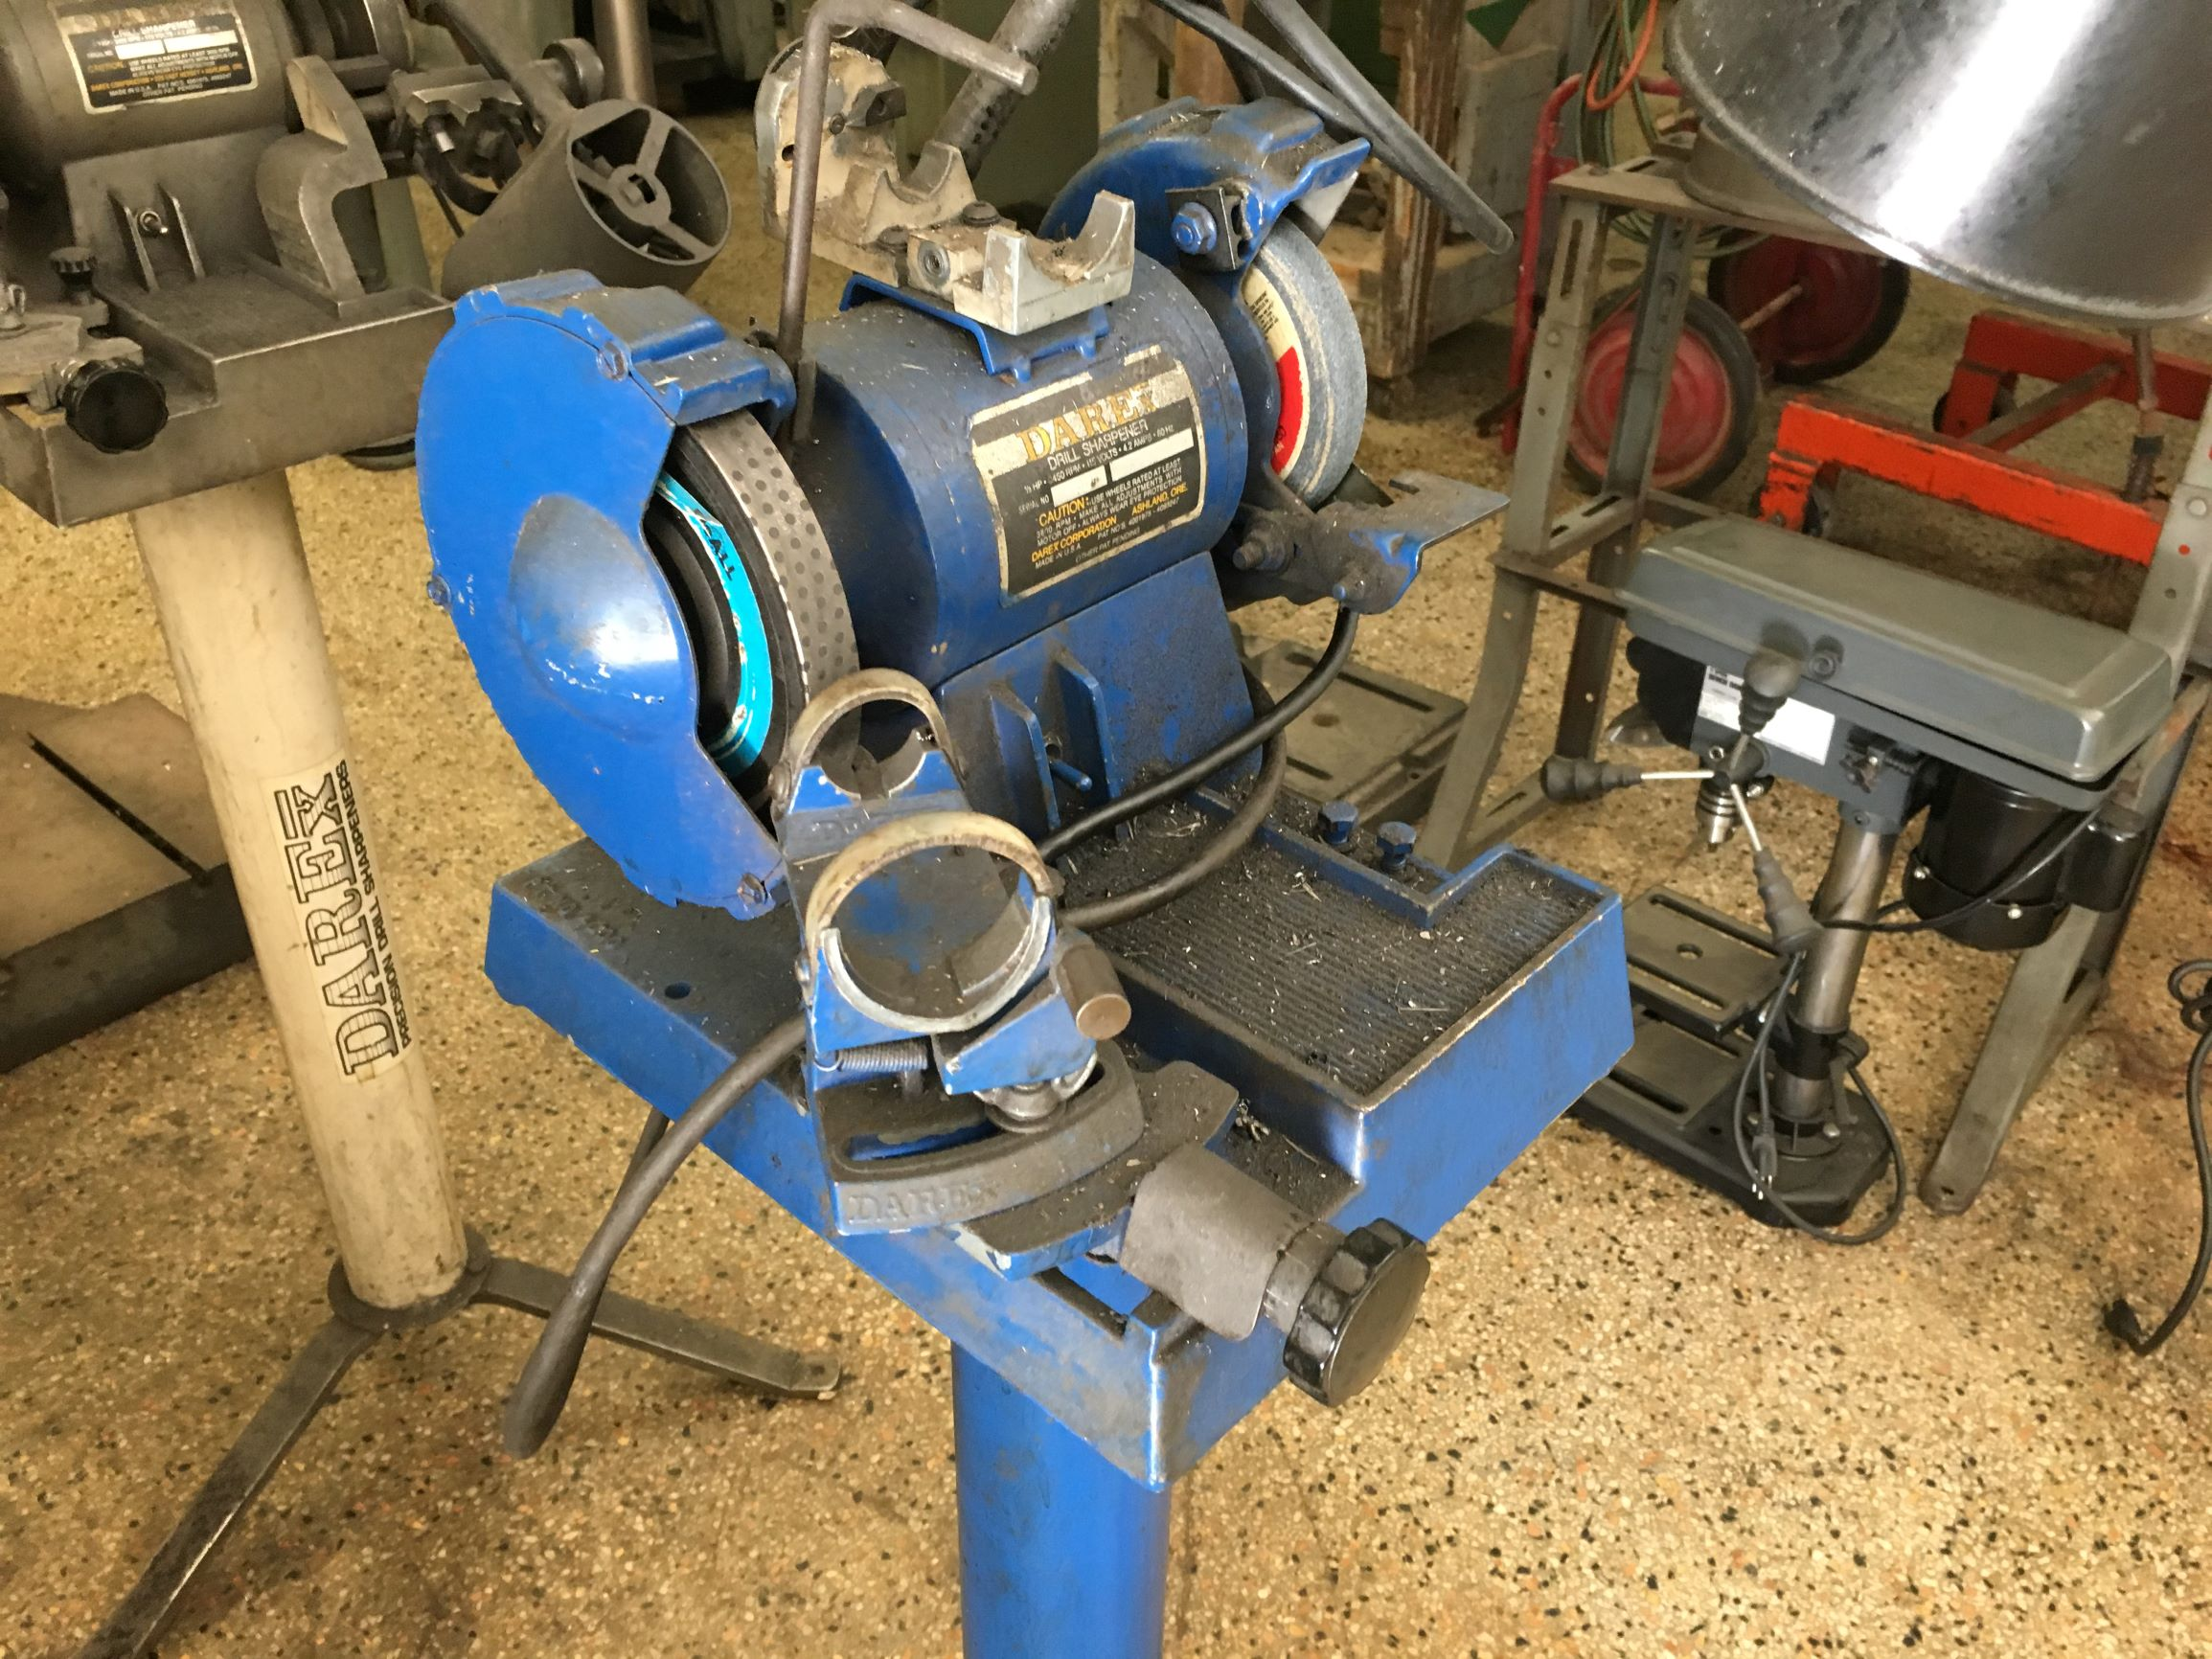 Darex 1/3 HP Drill Sharpener, S/N 53126.